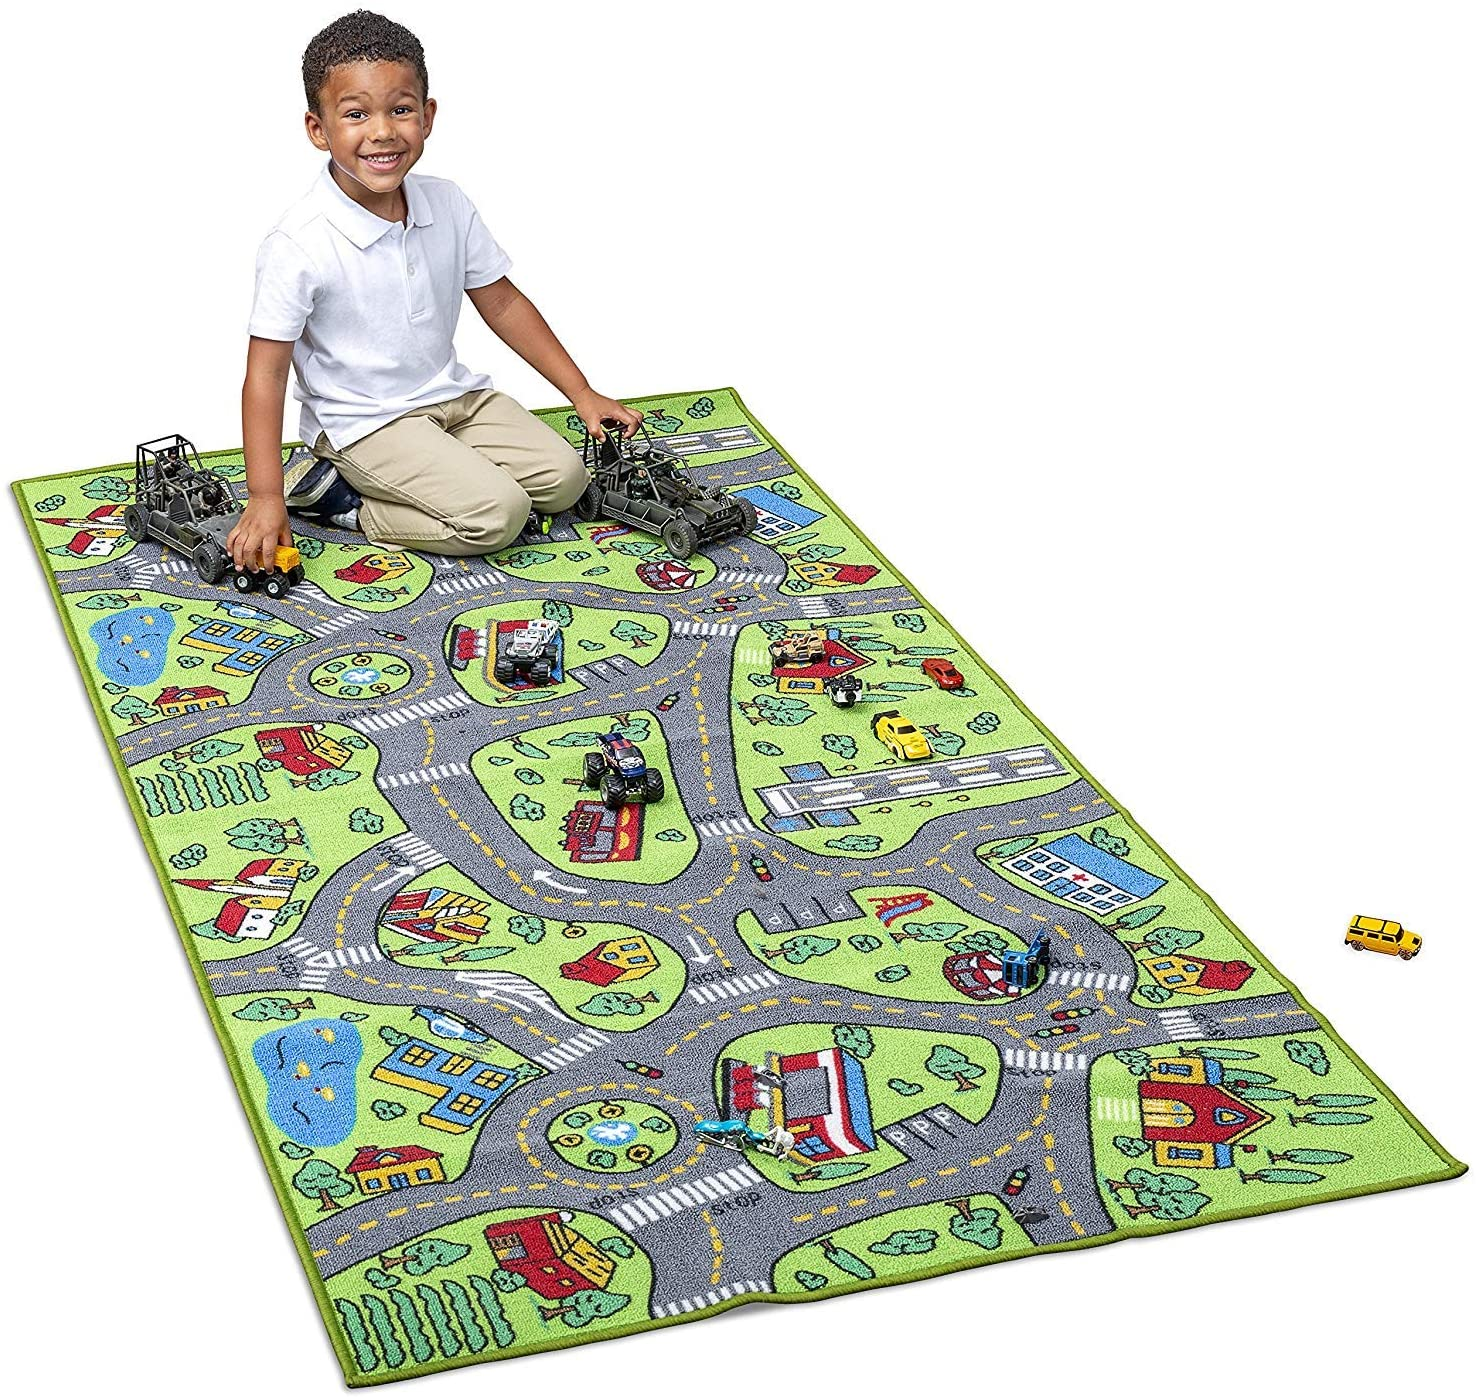 Kids Carpet Extra Large 80 x 40 Playmat City Life - Learn & Have Fun Safe! Childrens Educational, Road Traffic System, Multi Color, Play Mat Rug Great for Playing with Cars, Bedroom Playroom, Area